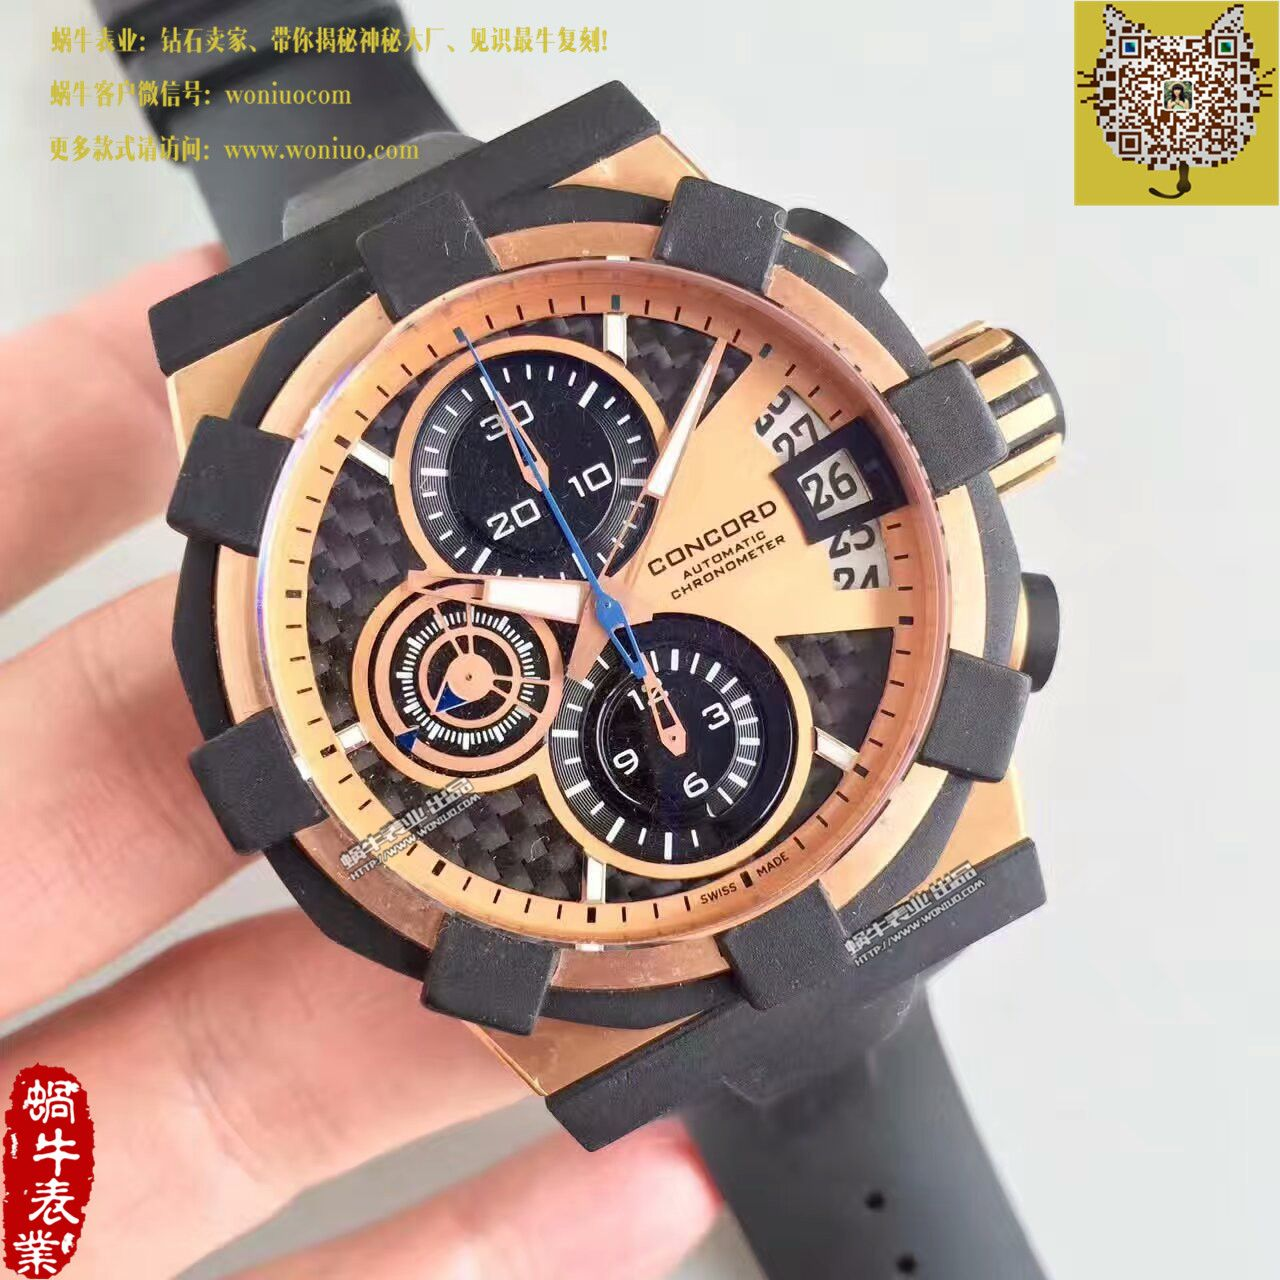 【台湾厂1比1超A高仿手表】君皇C1腕表 Concord C1 Mecatech Chronograph  watch